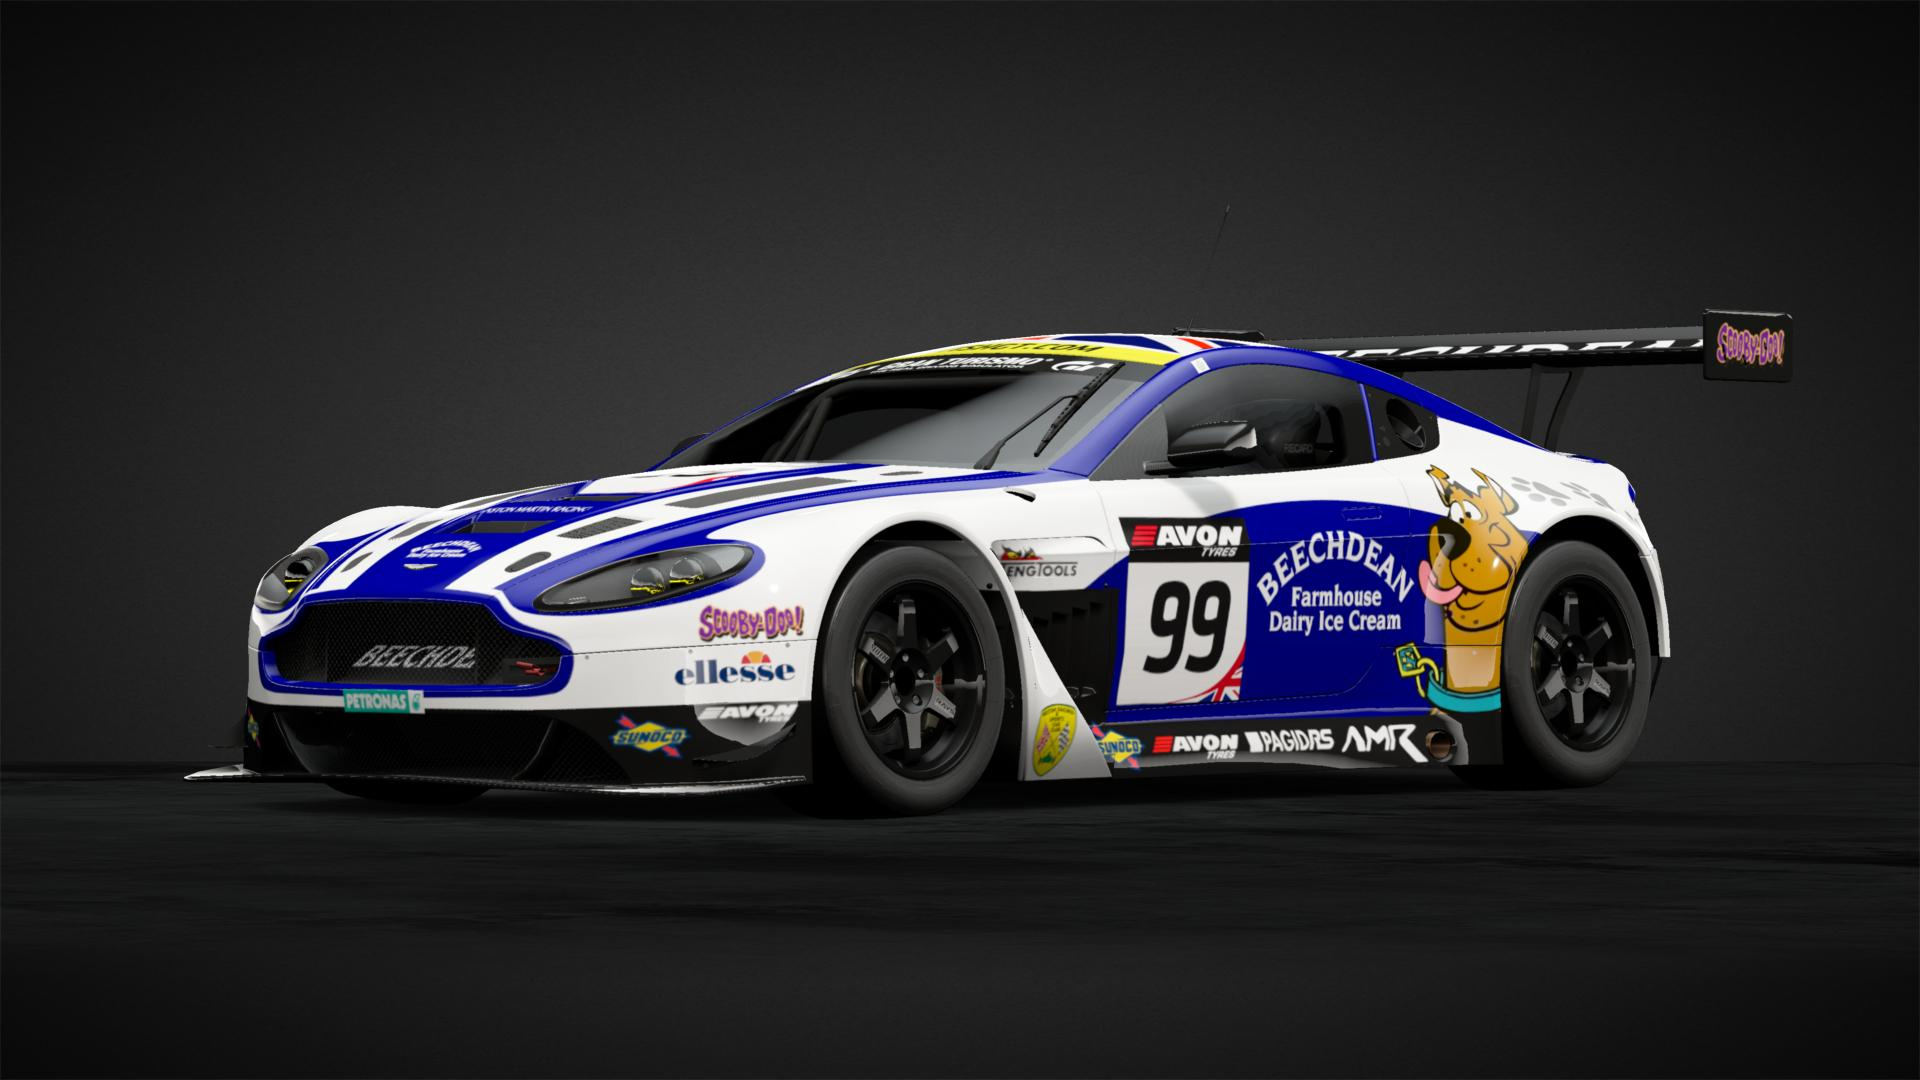 Beechdean - Car Livery by MSwain84   Community   Gran